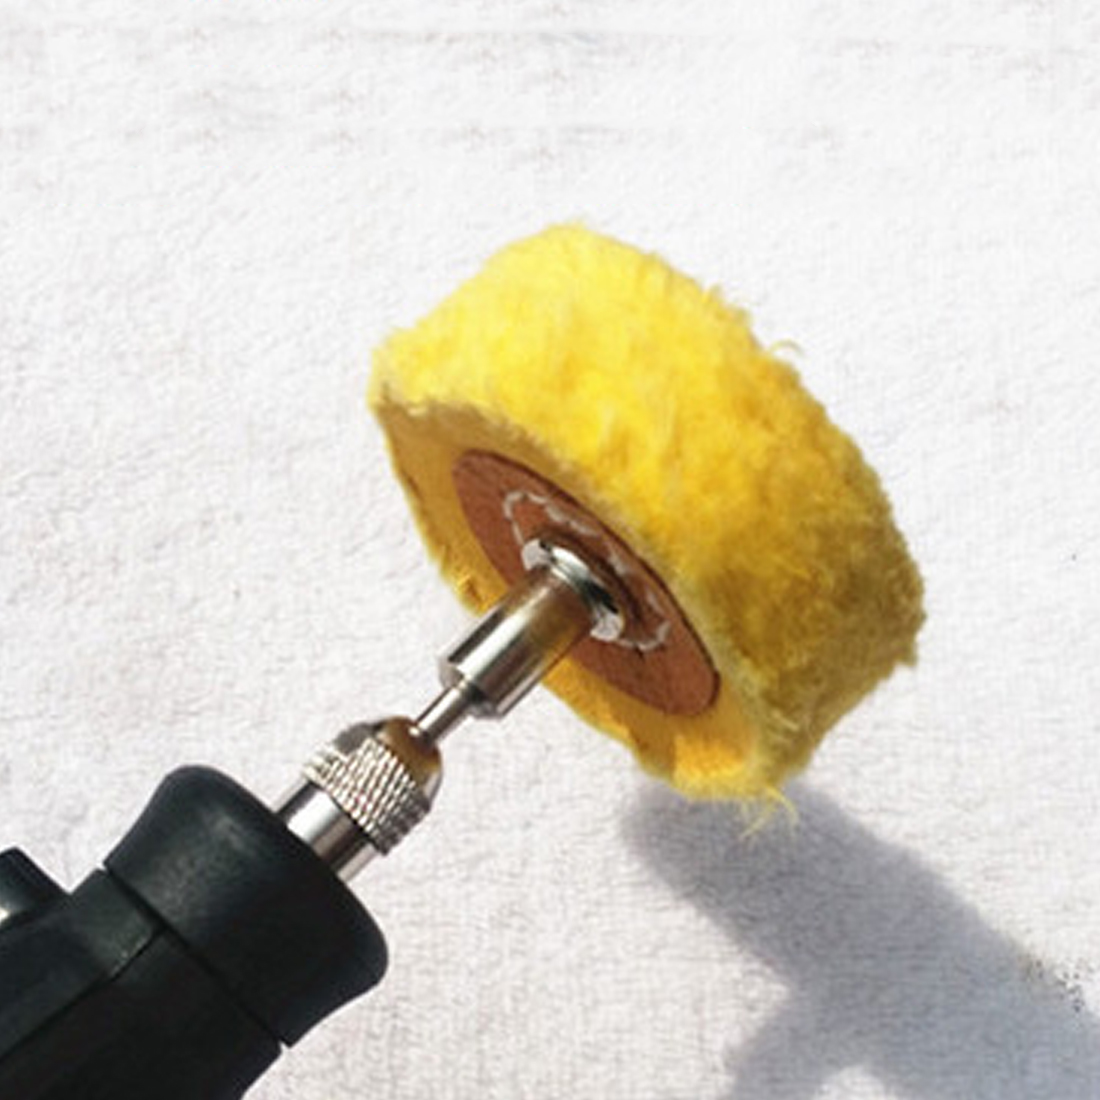 Grinder Brush T Style Polish Buffing Wheel Grinding Head Cloth Dremel Wheel For Rotary Abrasive Tools Dremel Accessories Shank in Abrasive Tools from Tools